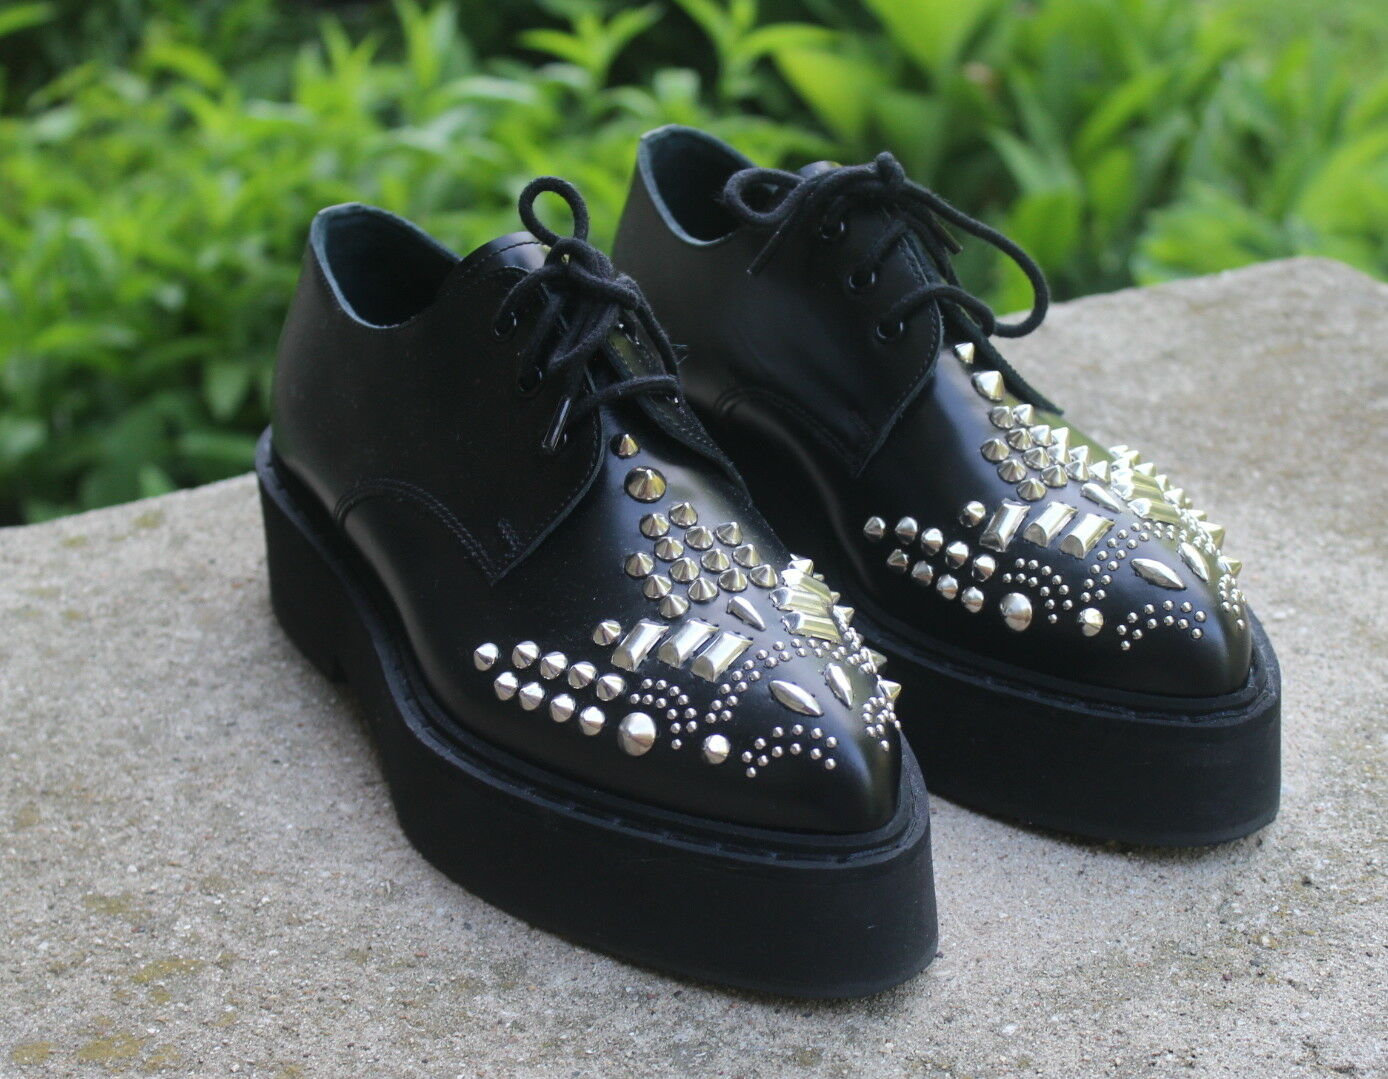 HOT - Shoes Alexander McQueen Leather Spiked Studded Platform Oxfords Shoes - 35.5 5.5 9c4f7d